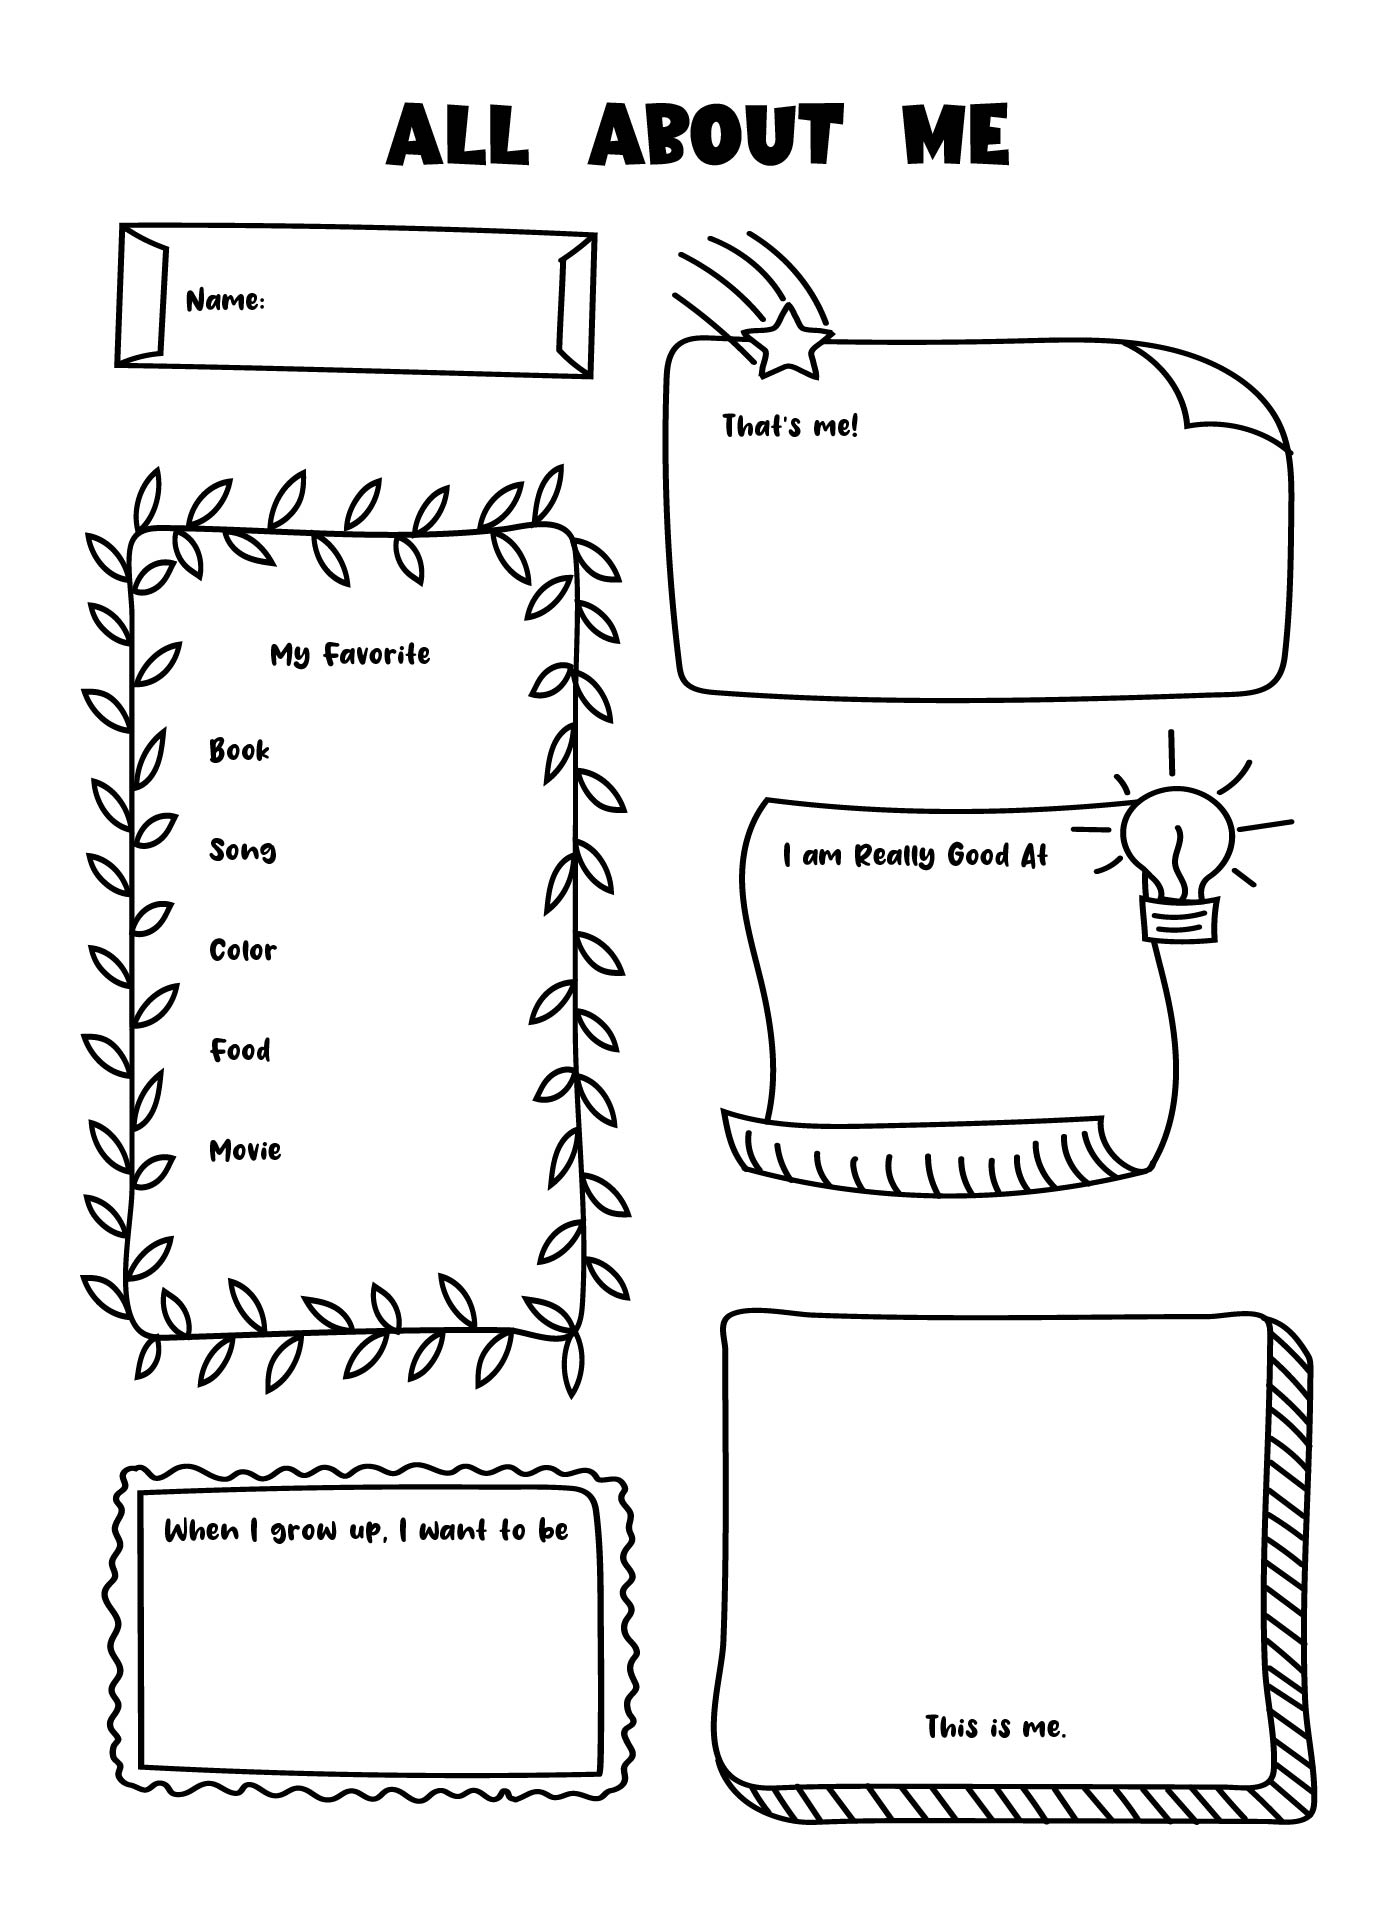 worksheet All About Me Worksheet For Adults 9 best images of printable worksheets about me all template worksheet